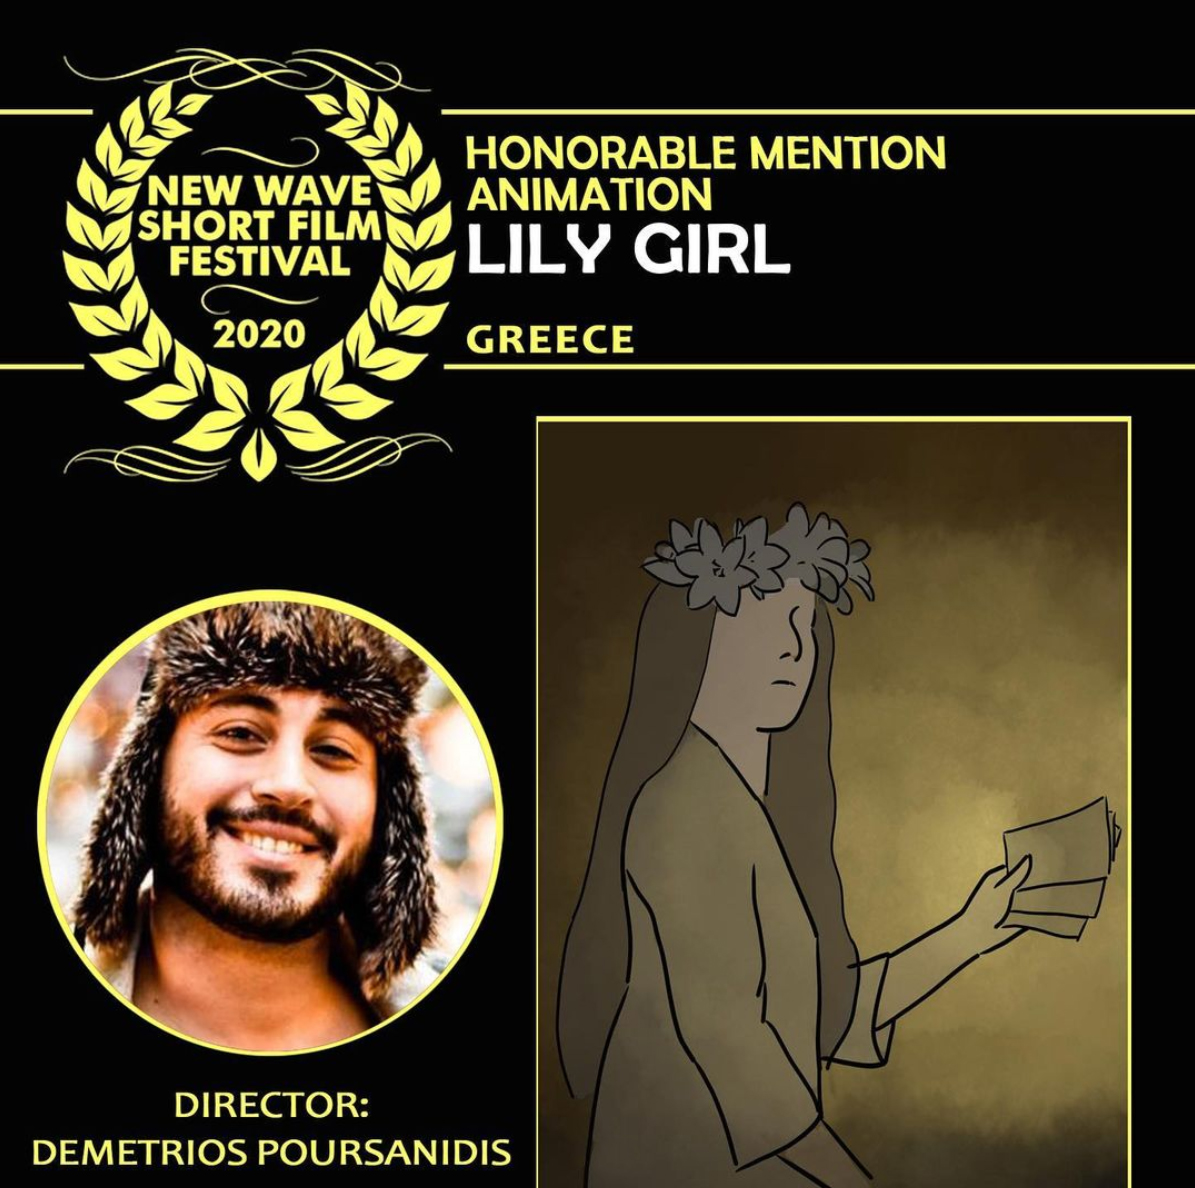 Lily Girl received an Honorable Mention Award in the category of Animated Film at the 2020 New Wave Short Film Festival (Munich, Germany)